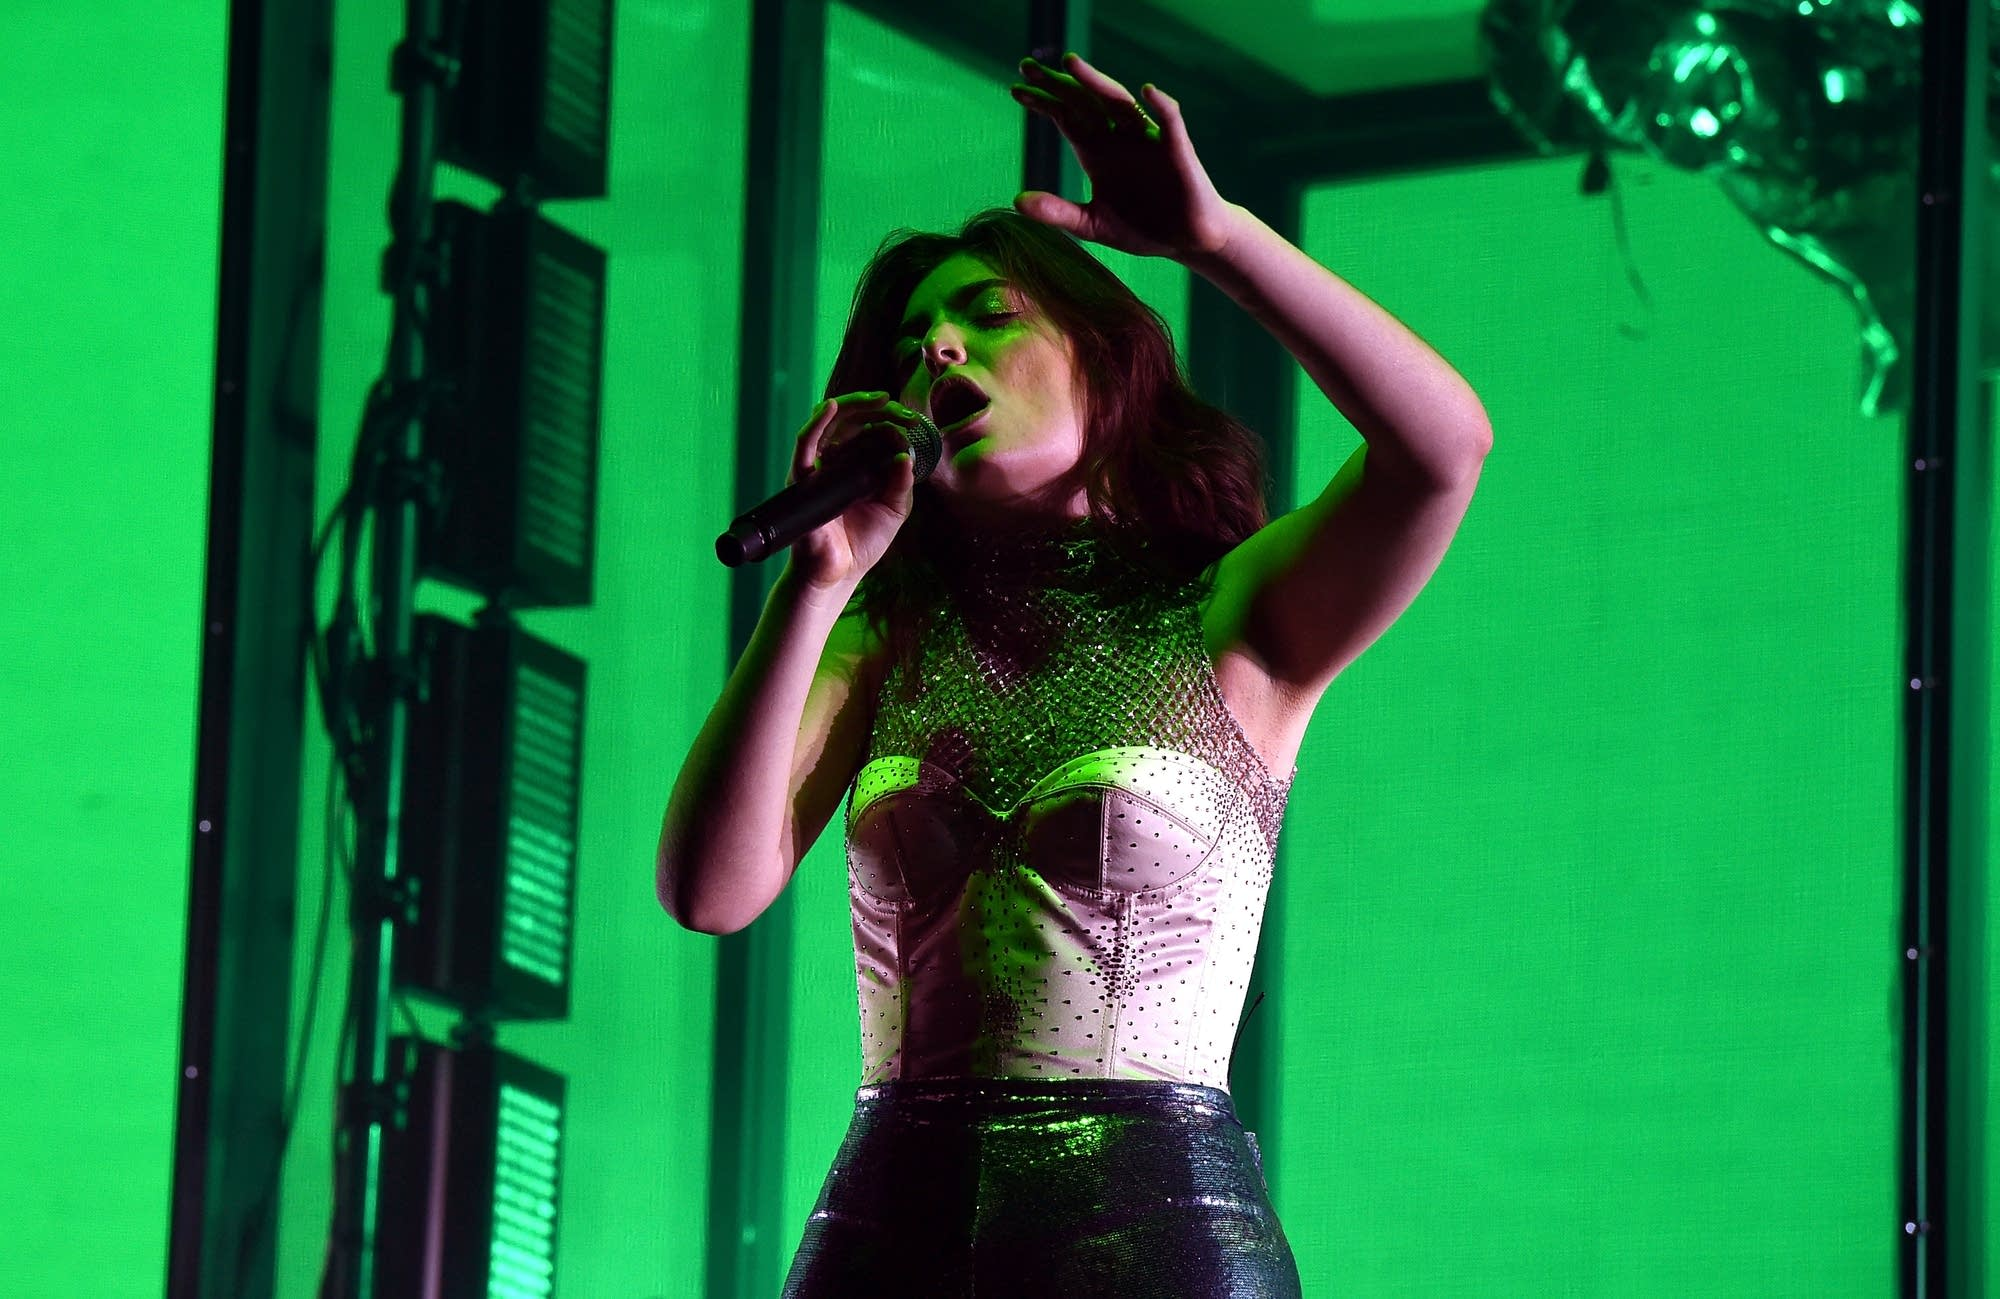 Lorde performs at Coachella on April 16, 2017.